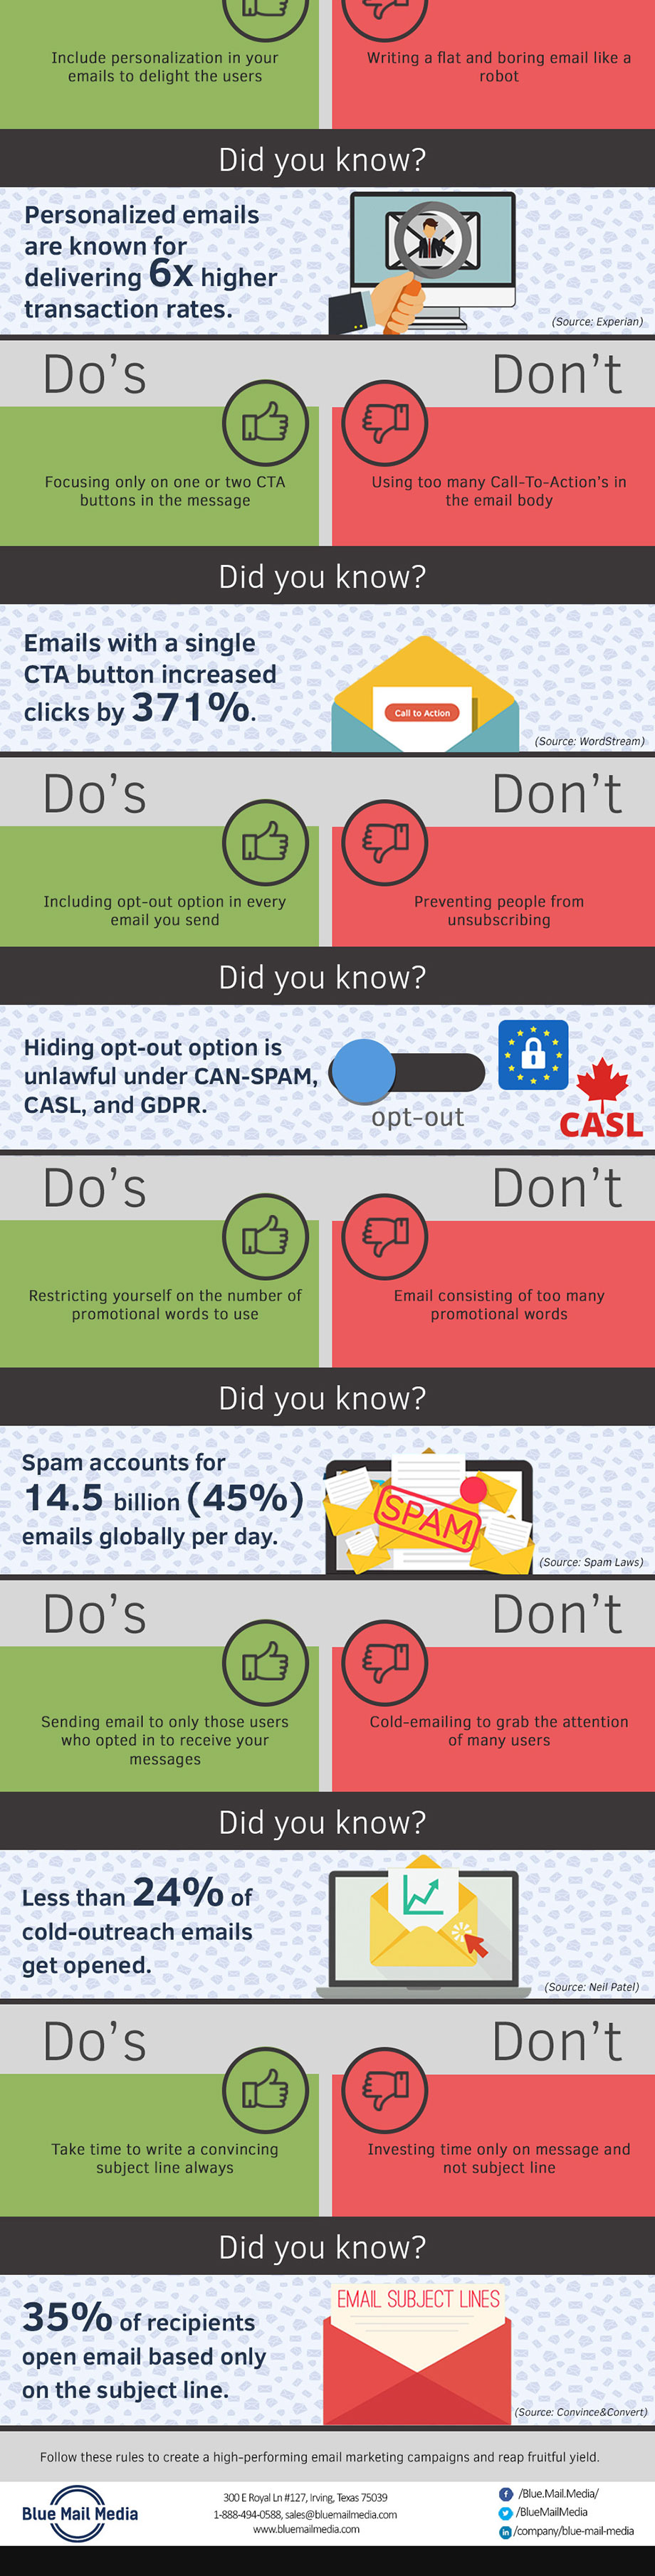 email-marketing-decorum-dos-donts-campaign-success-infographic-2